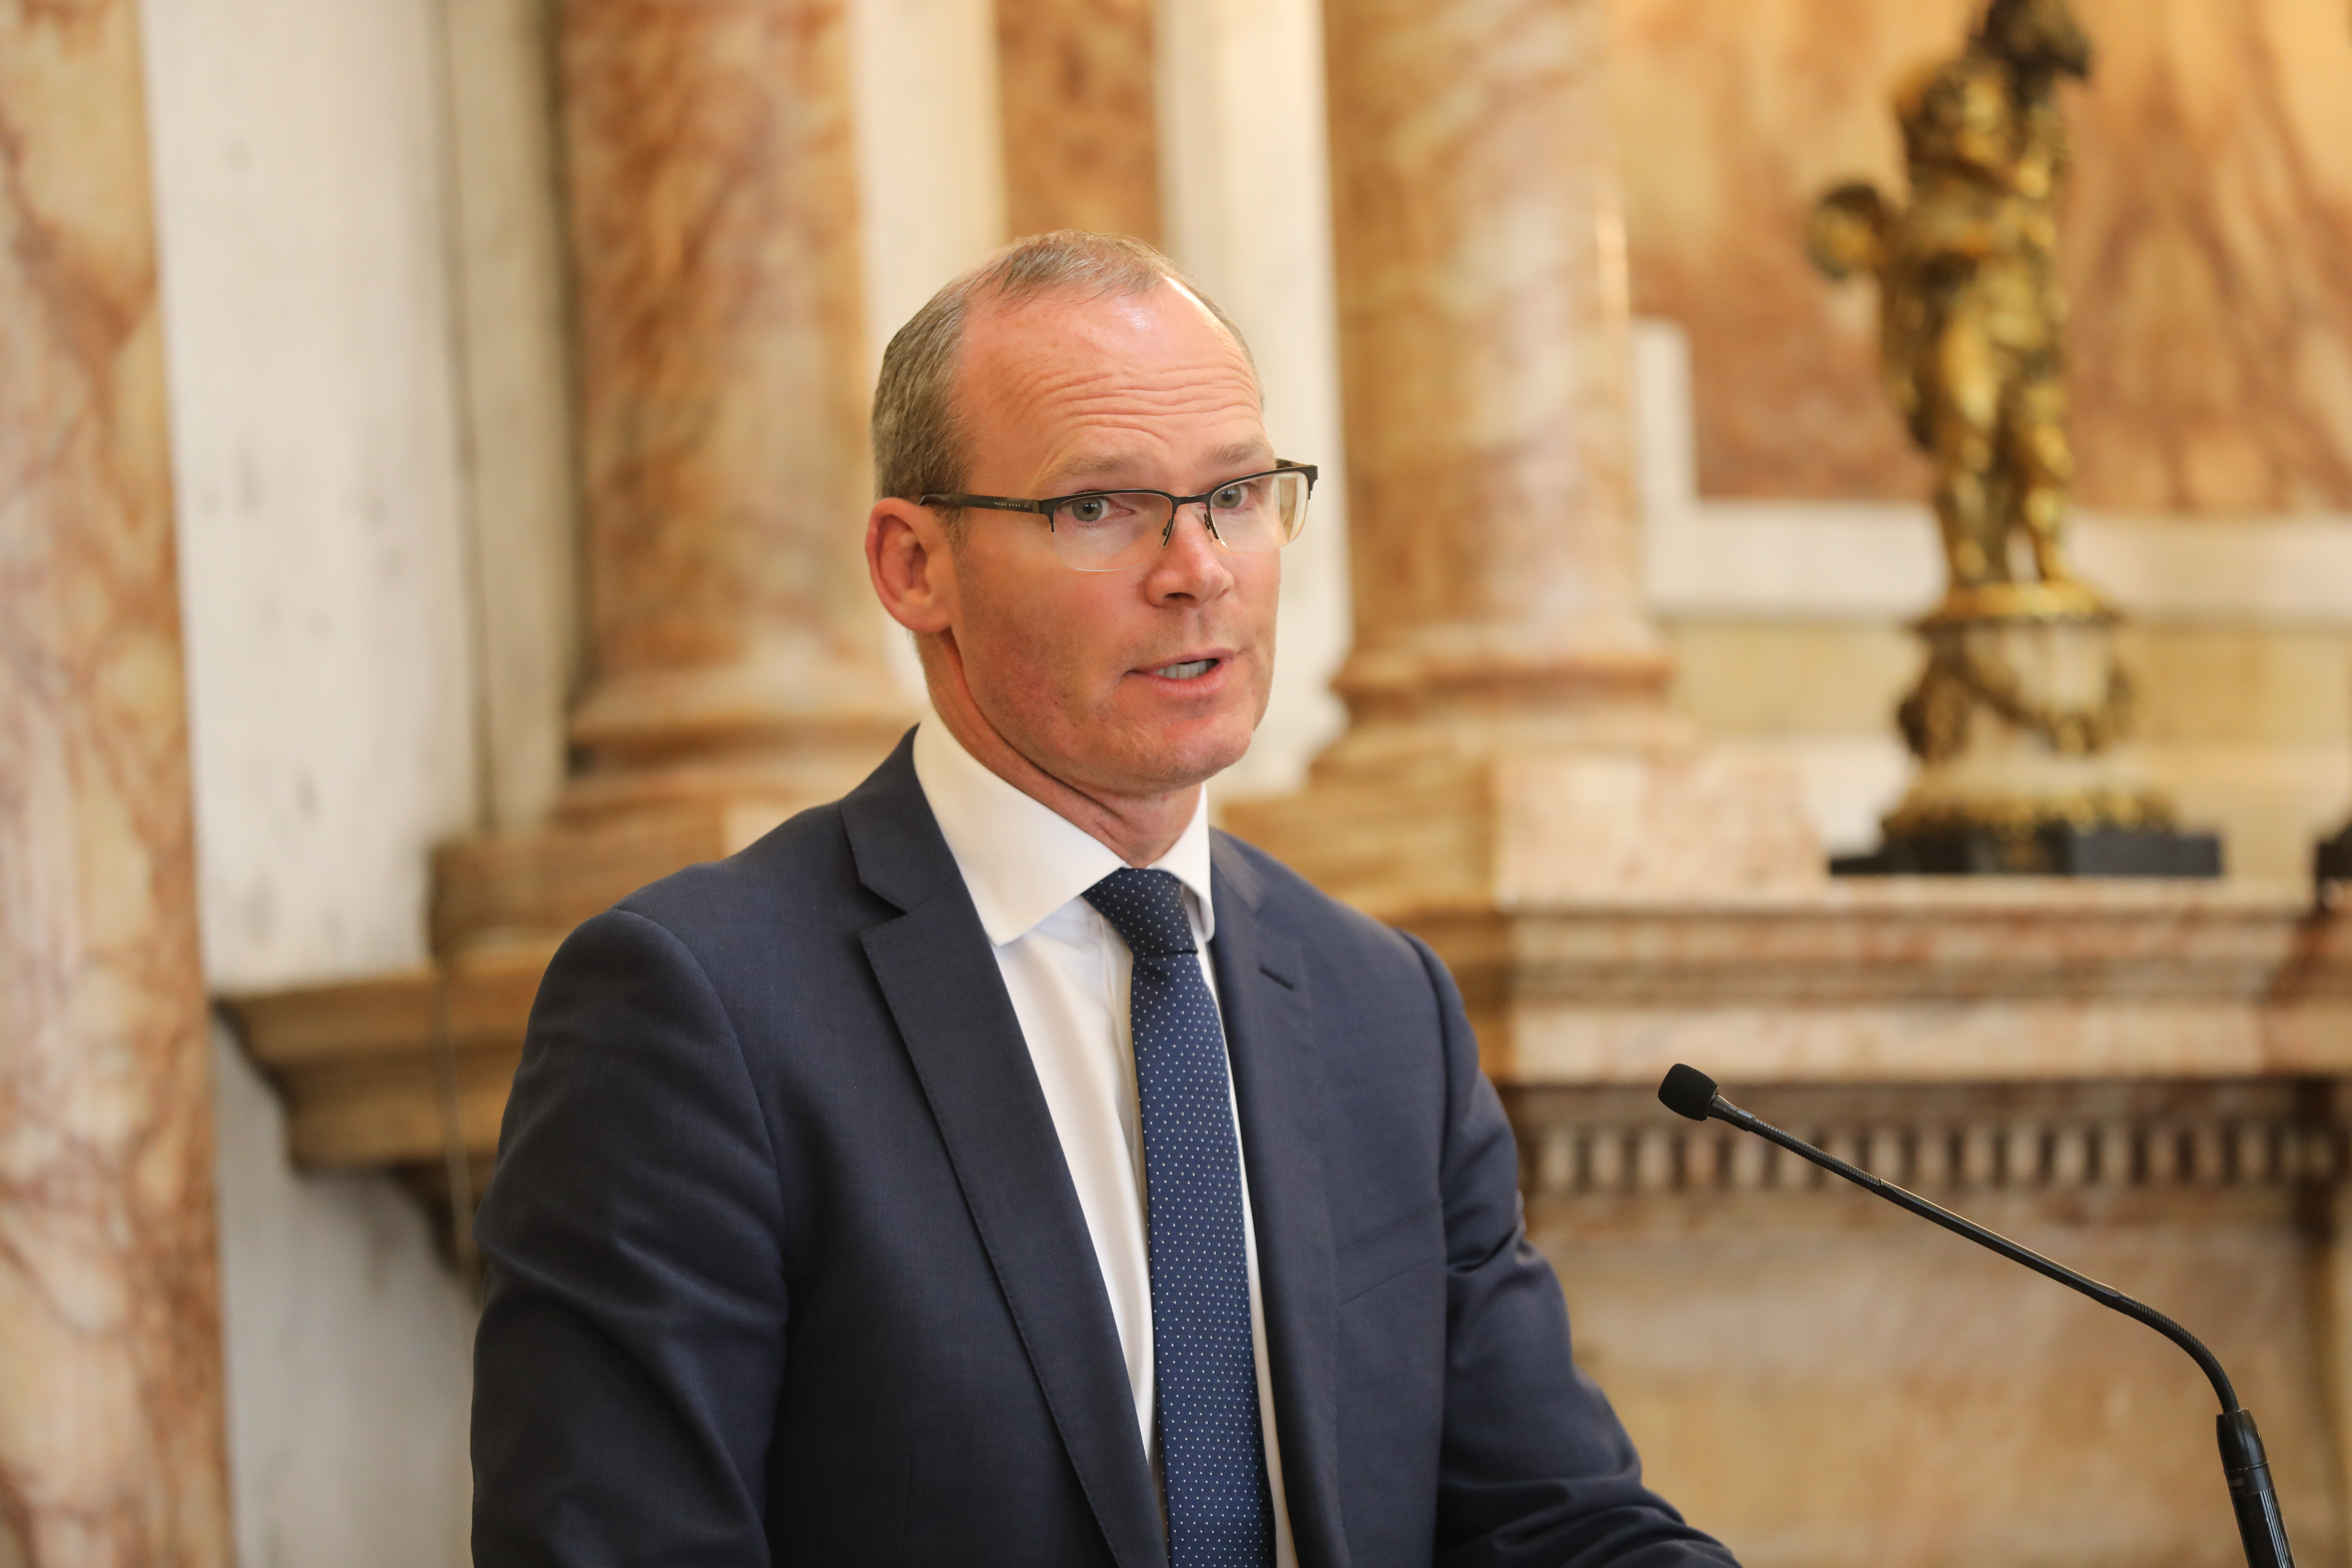 Statement from Tánaiste Simon Coveney after Cabinet